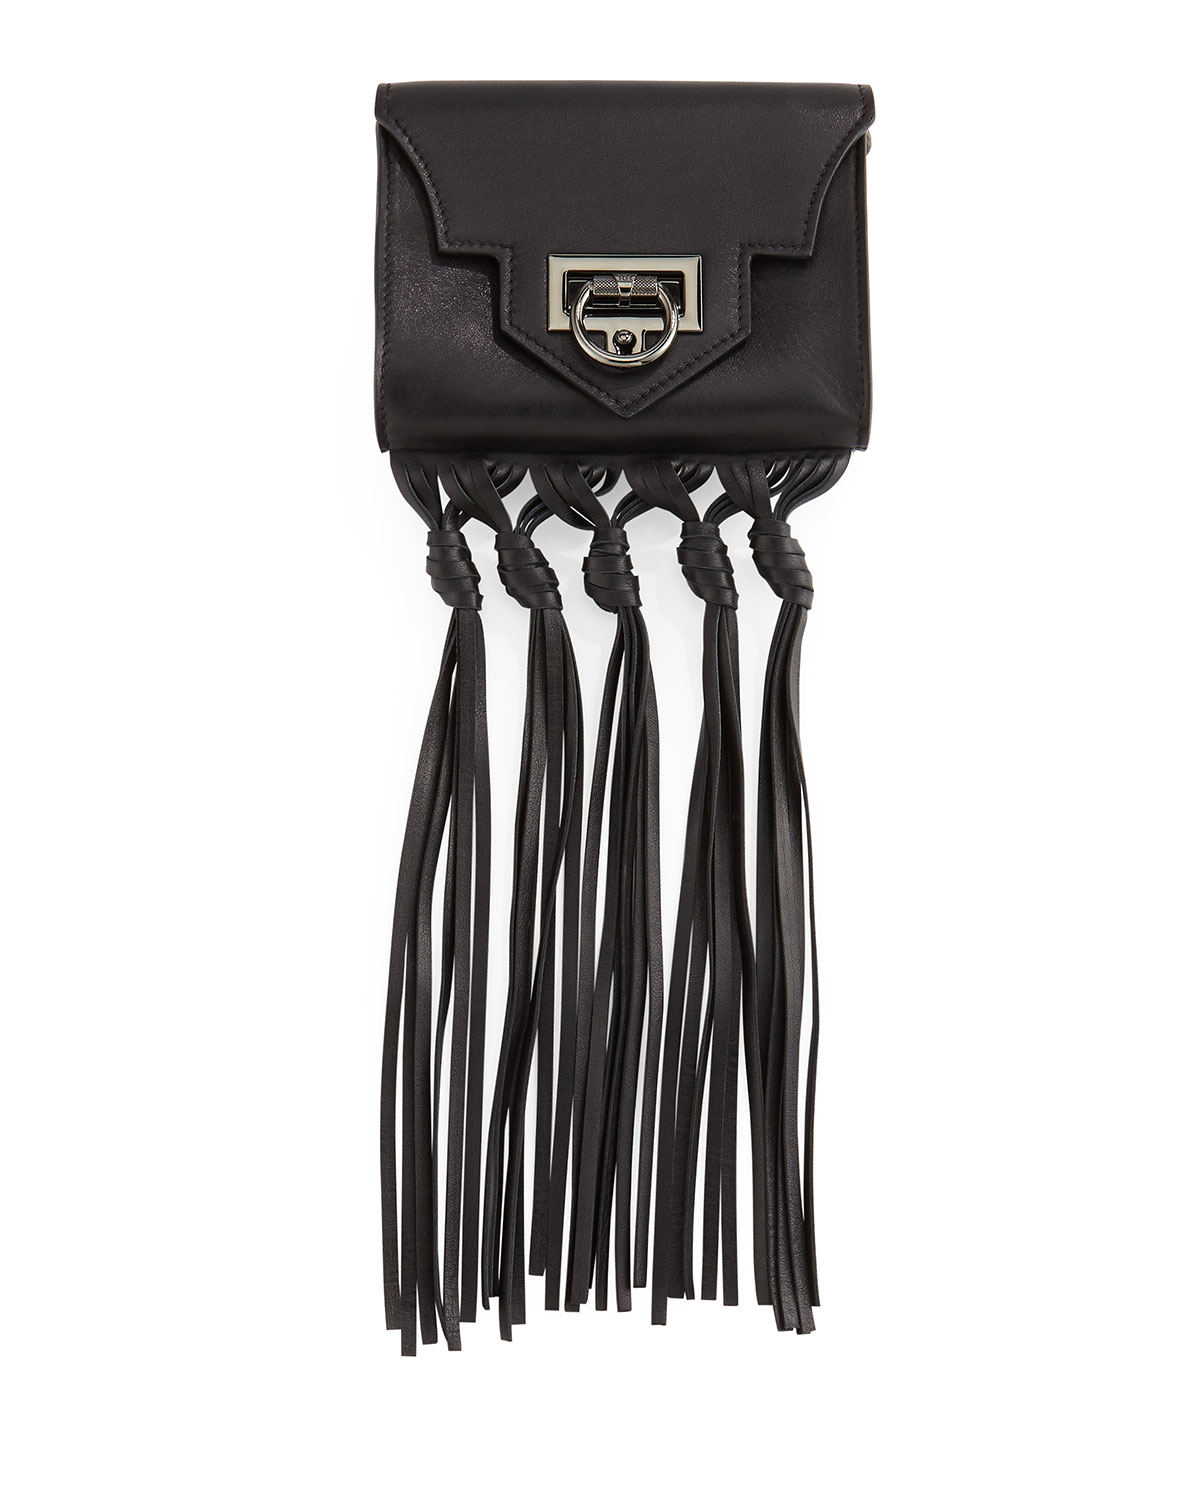 Reece Hudson Rider Mini Fringe Crossbody Bag, Black